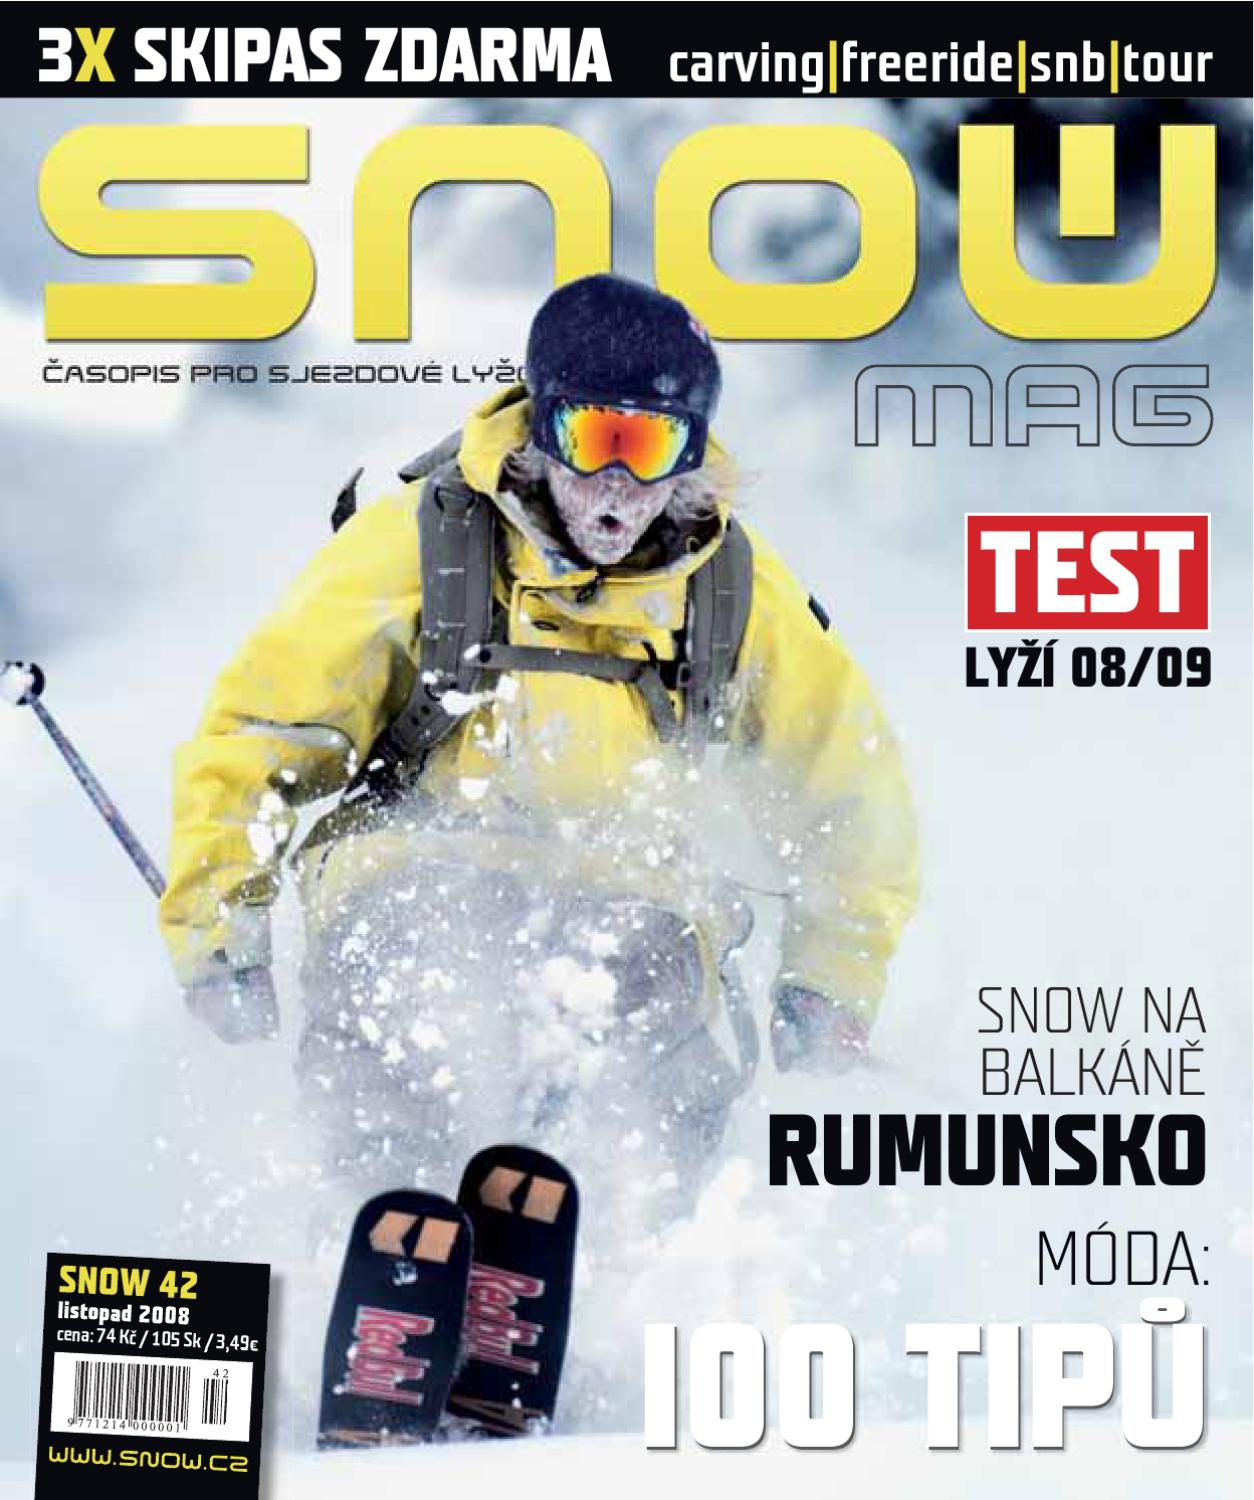 SNOW 42 - listopad 2008 by SNOW CZ s.r.o. - issuu 99d46ebae69